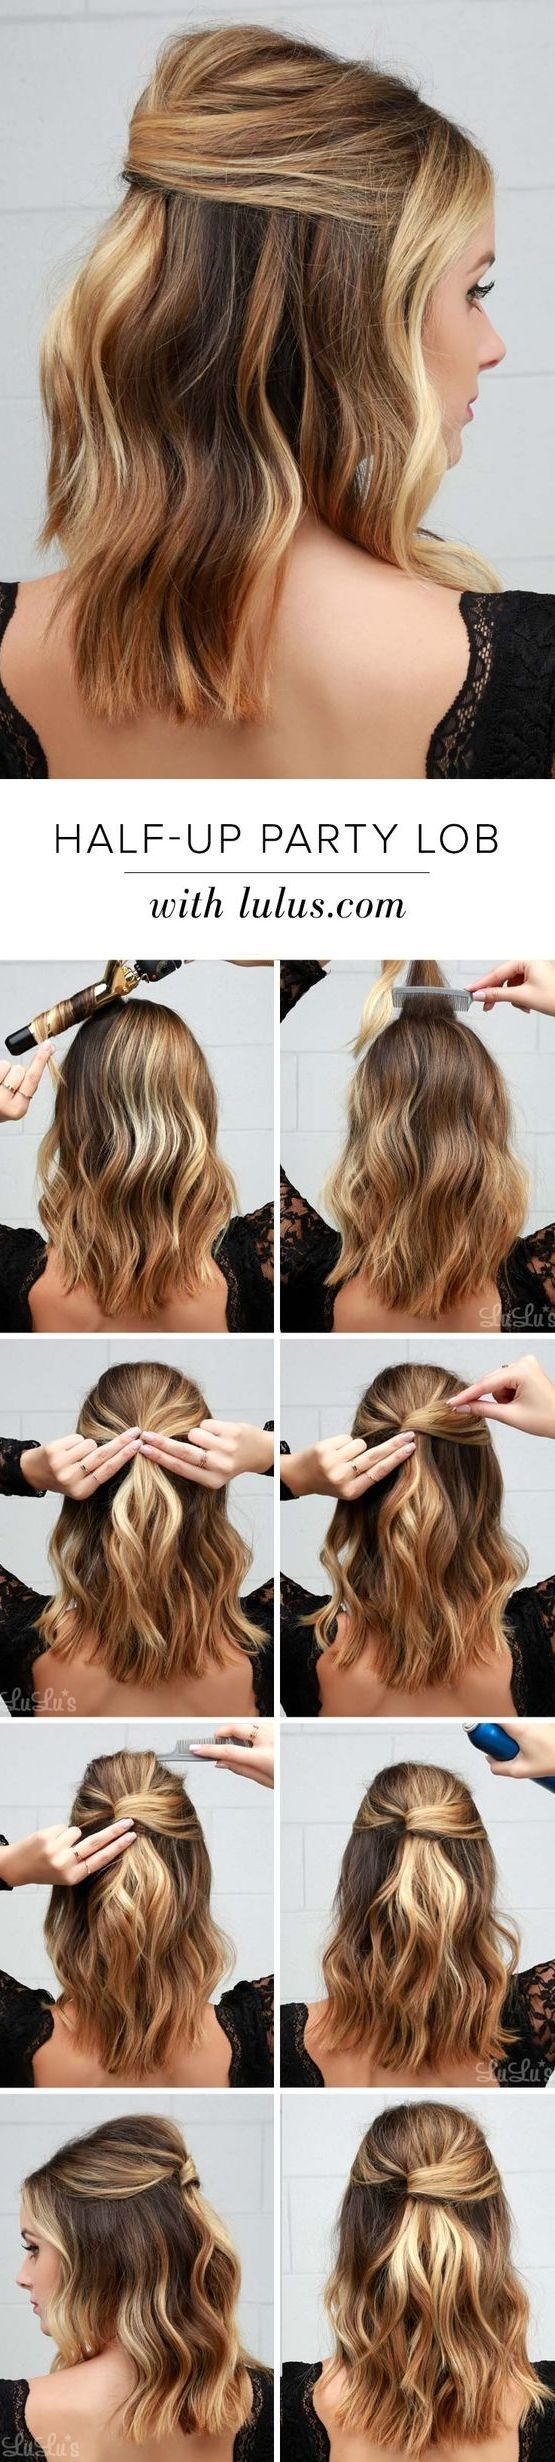 When we talk about cute and cool hairstyles for girls, we mean no frizz curly dos and fancy braids that look complex but are simple to create.  Many of us catch our hair into a ponytail just because we don't have time to create different hairstyles, or we simply don't want to consume our energy in